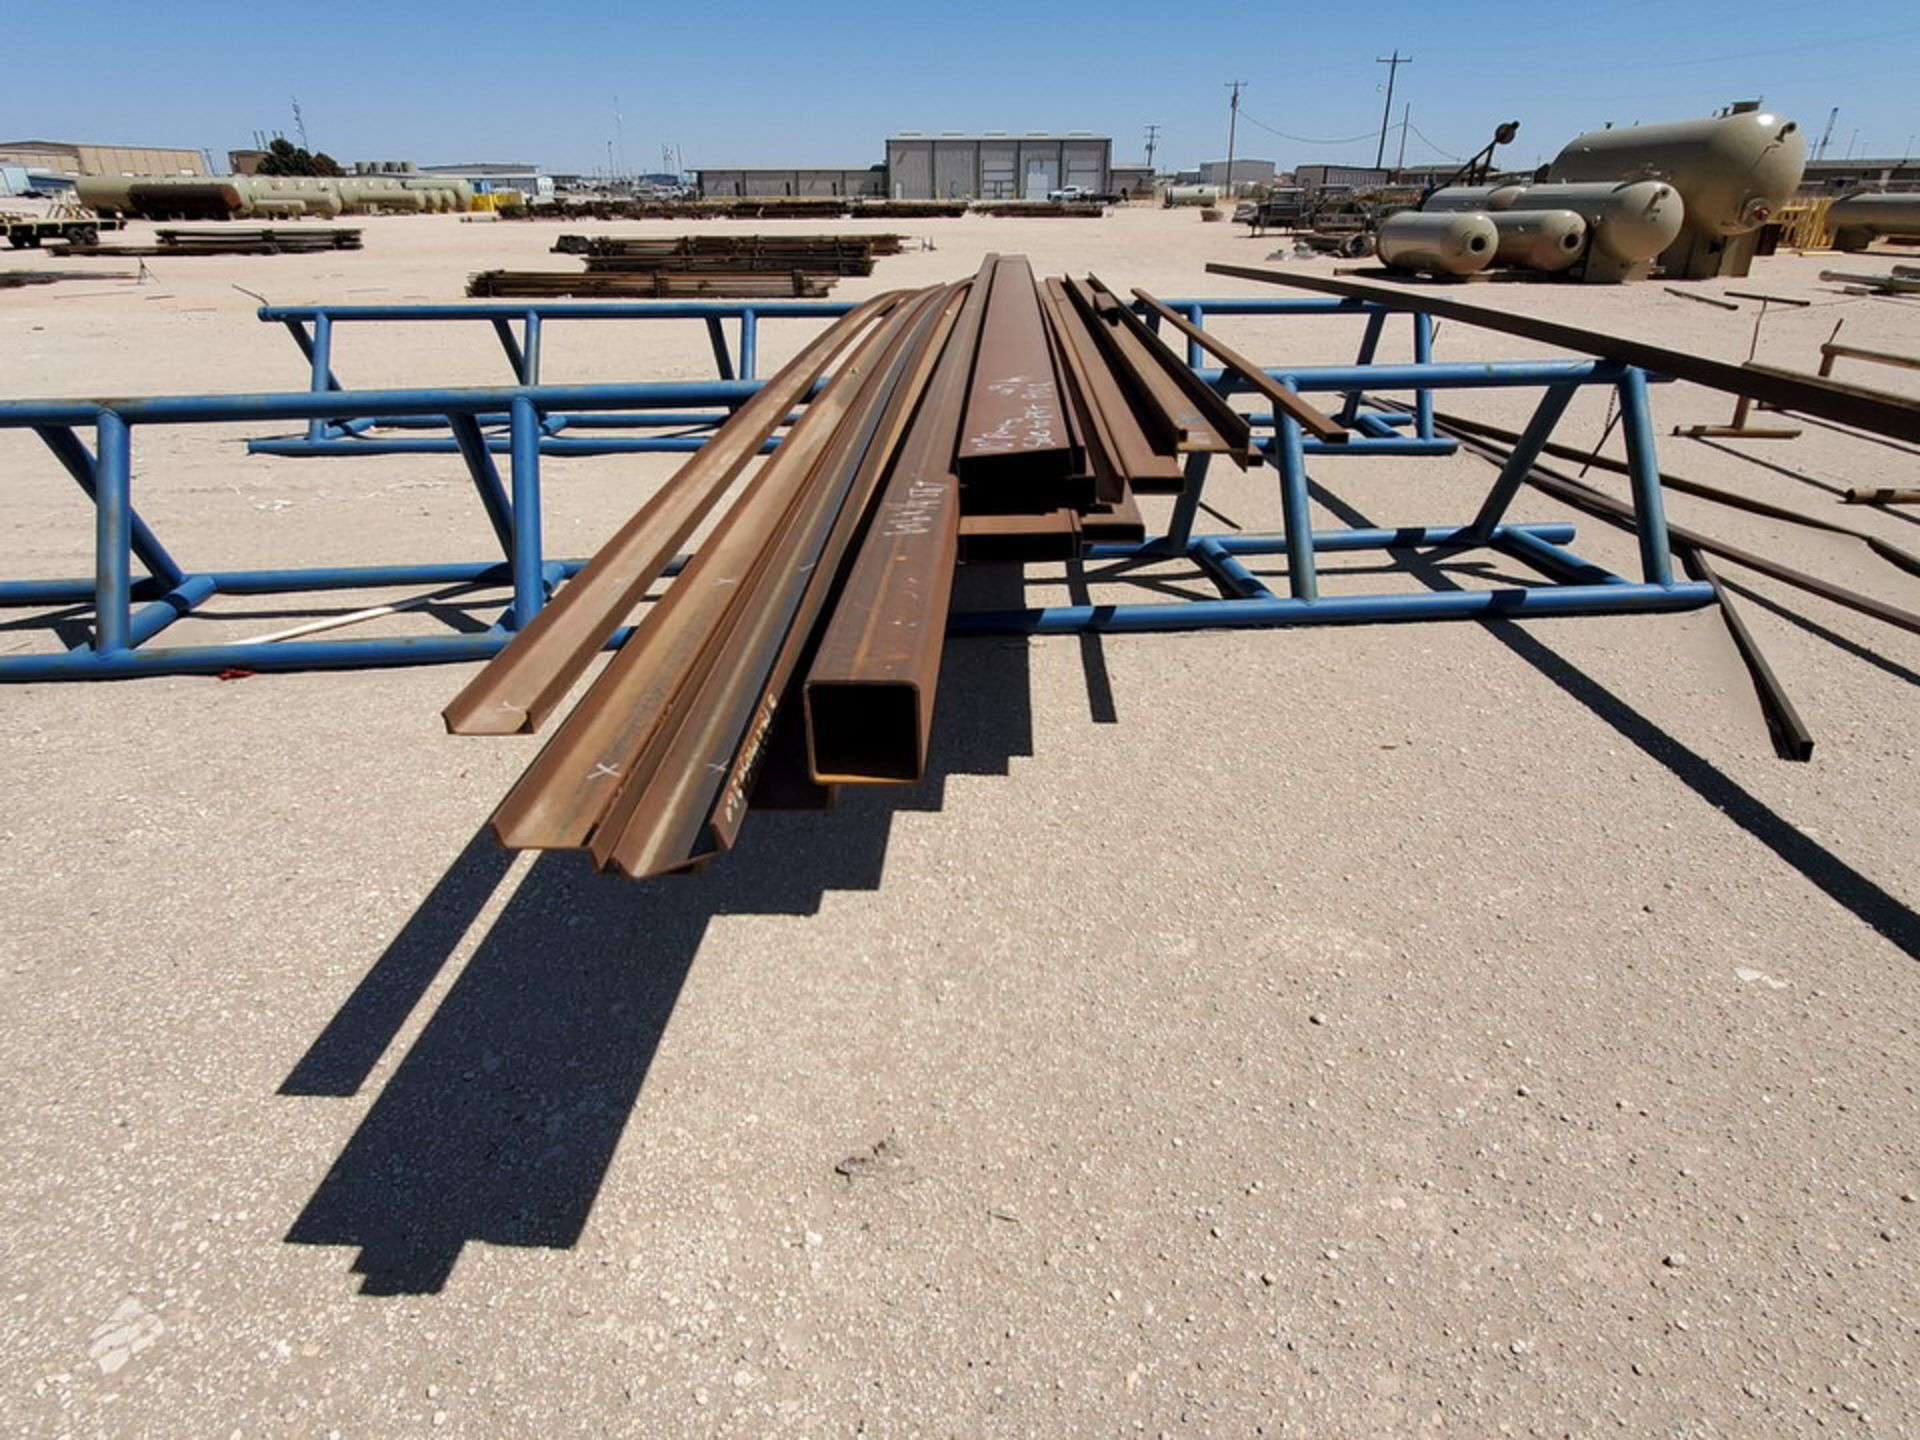 "Assorted Matl. To Include But Not Limited To: Angle, Channel, Sq. Tubing, Rect. Tubing, etc., 6"" - - Image 12 of 16"